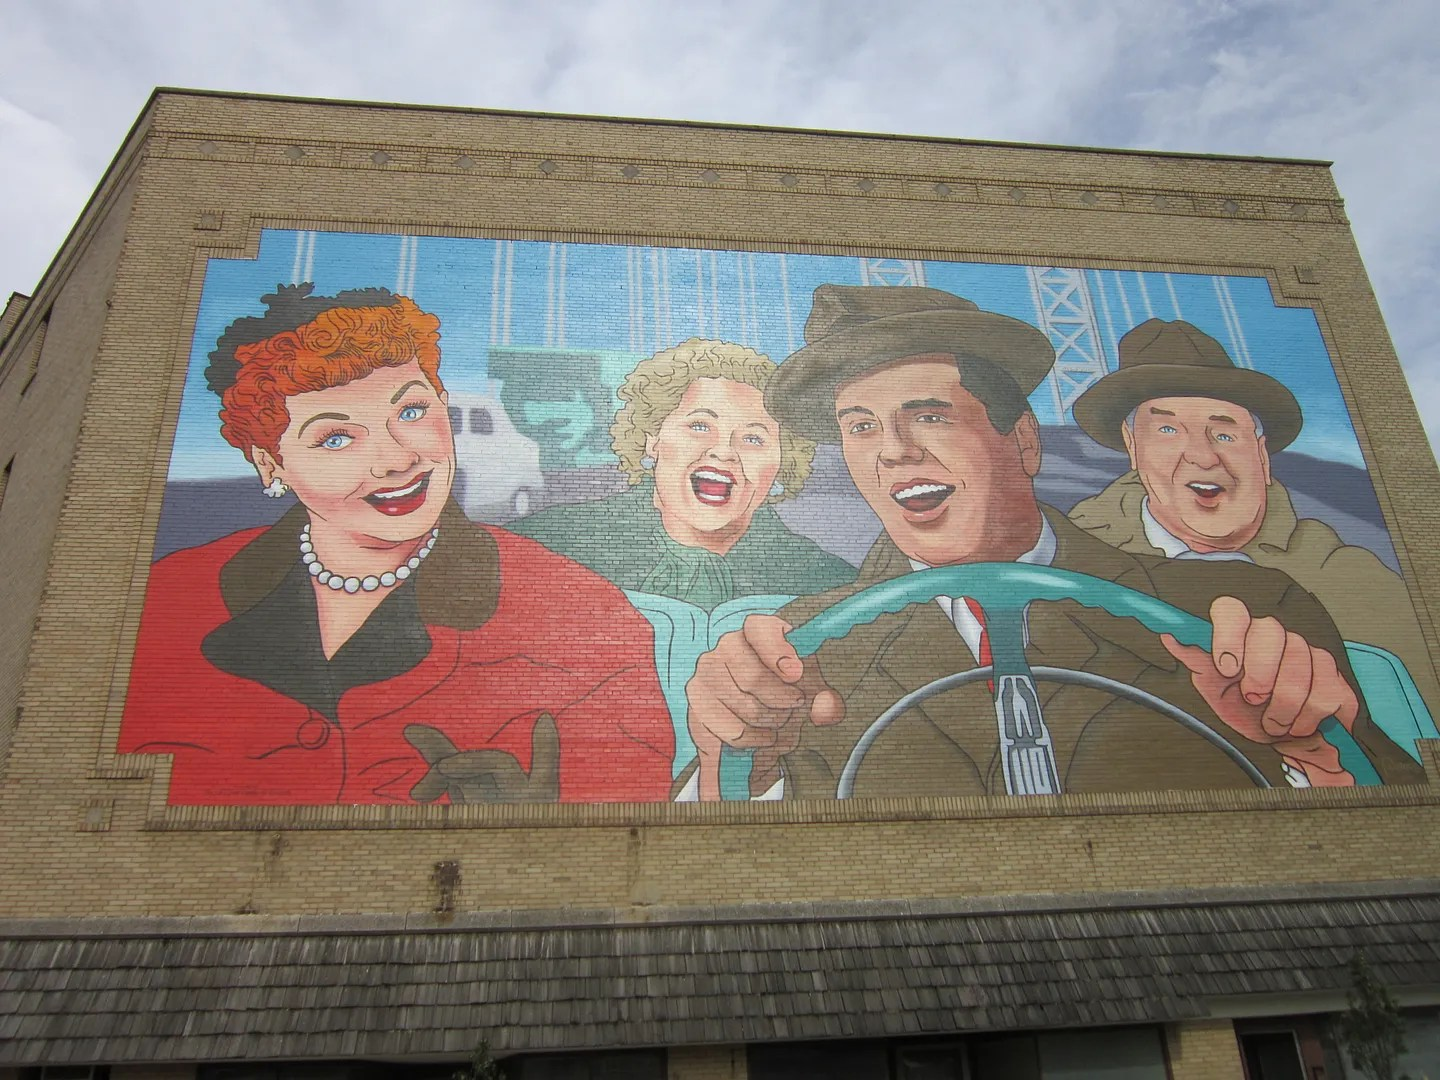 I Love Lucy mural, Jamestown, New York